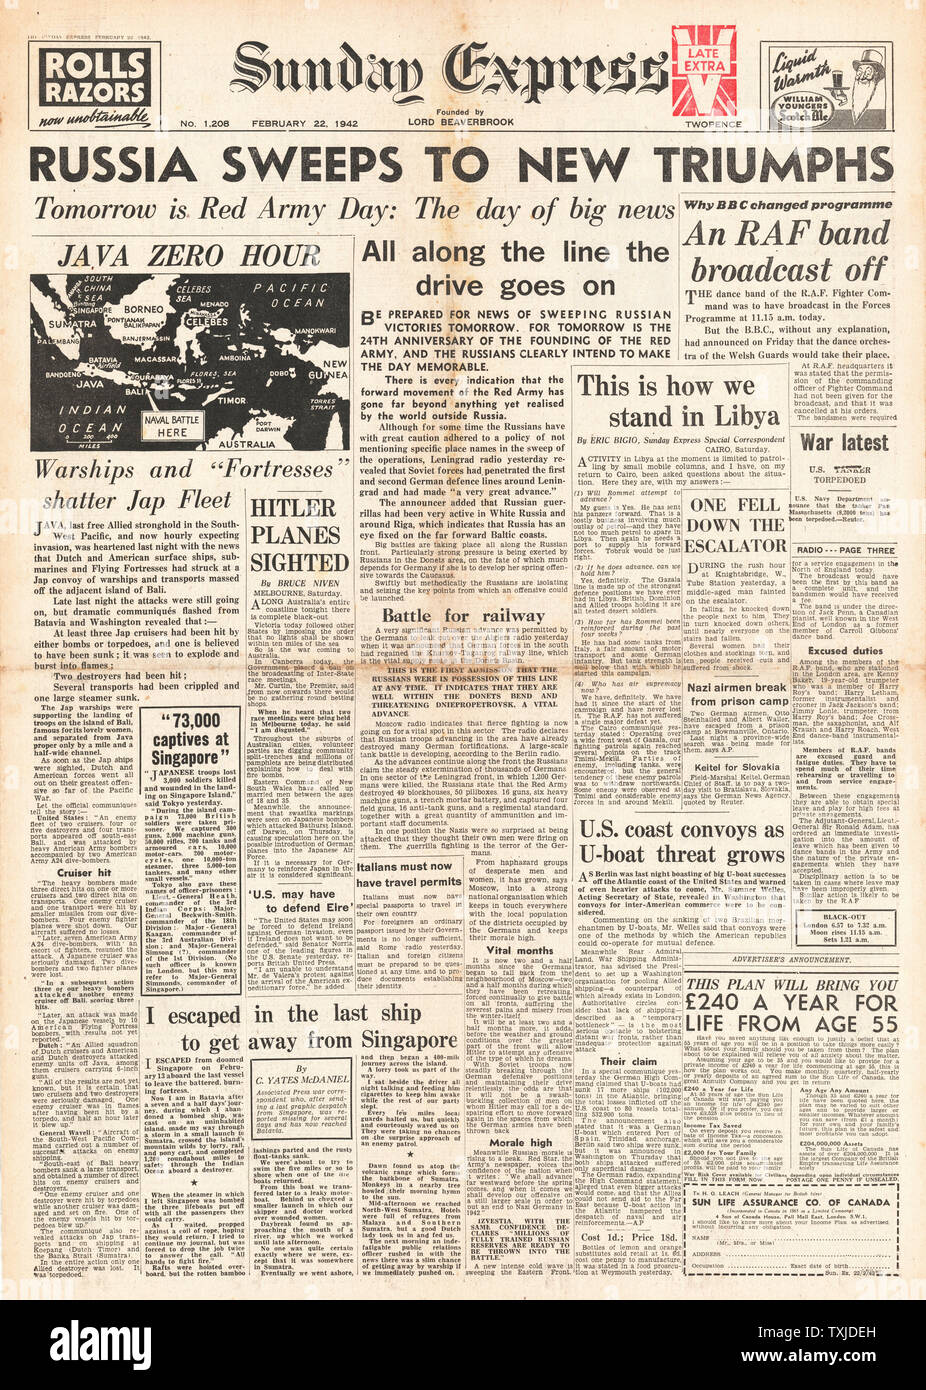 1942 front page Sunday Express Allied Ships and Aircraft attack Japanese Fleet off Bali and Siege of Leningrad Stock Photo